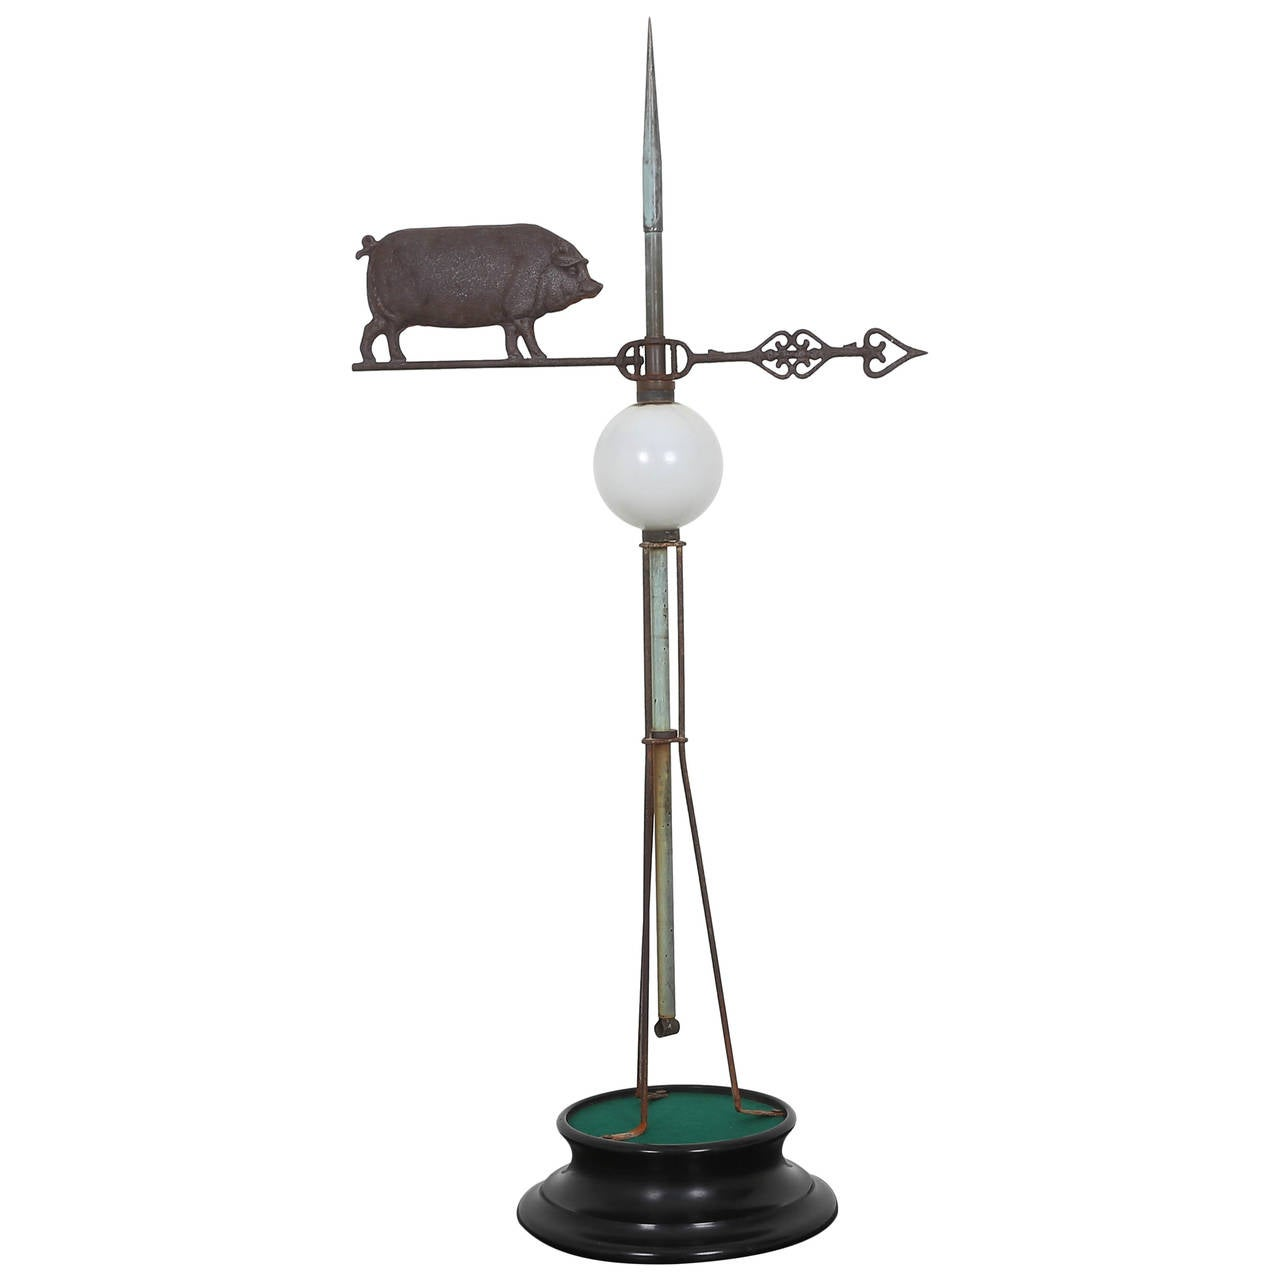 19th Century Pig Weathervane with Milk Glass Insulator Ball